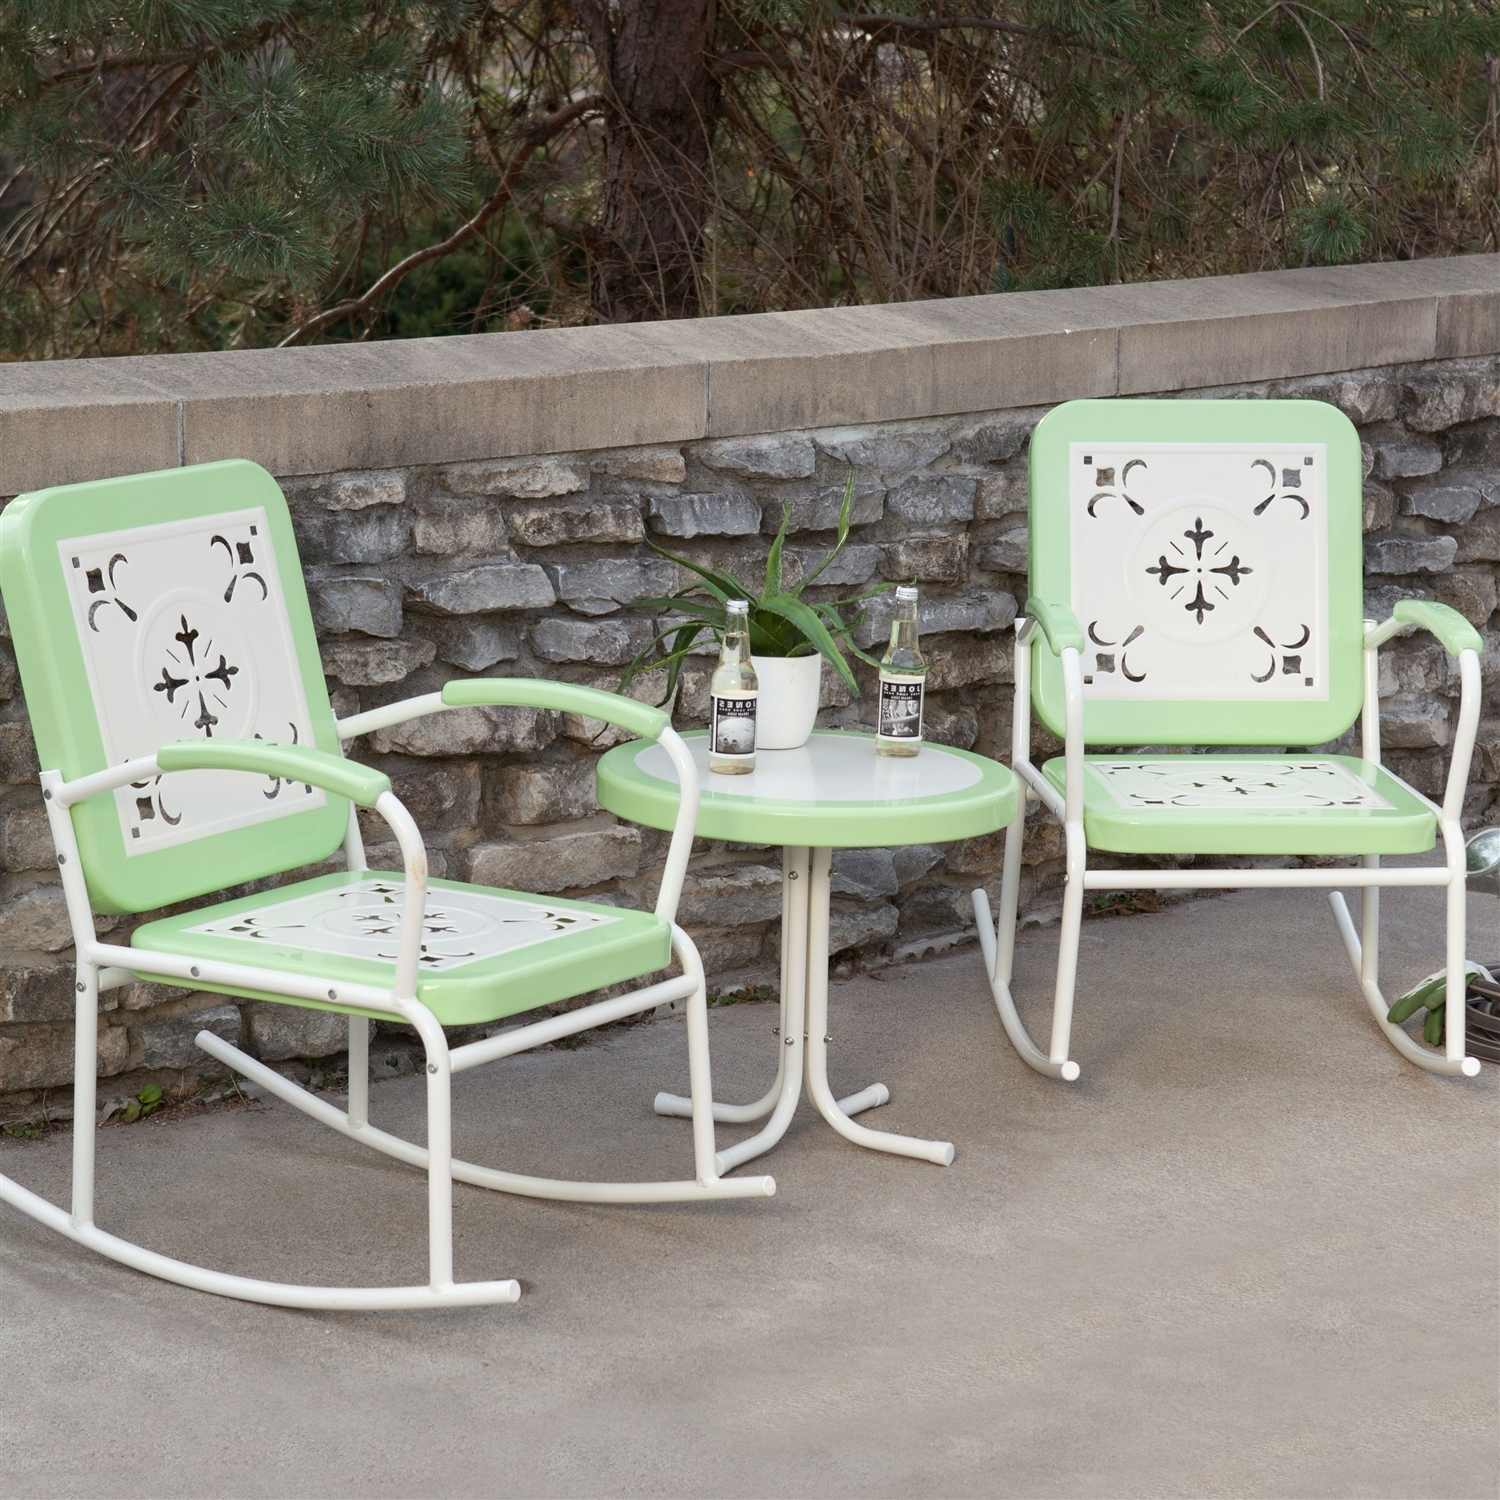 Inspiration about Mint Green Retro Patio 3 Pc. Metal Rocker Rocking Chair Set Pertaining To Retro Outdoor Rocking Chairs (#5 of 15)